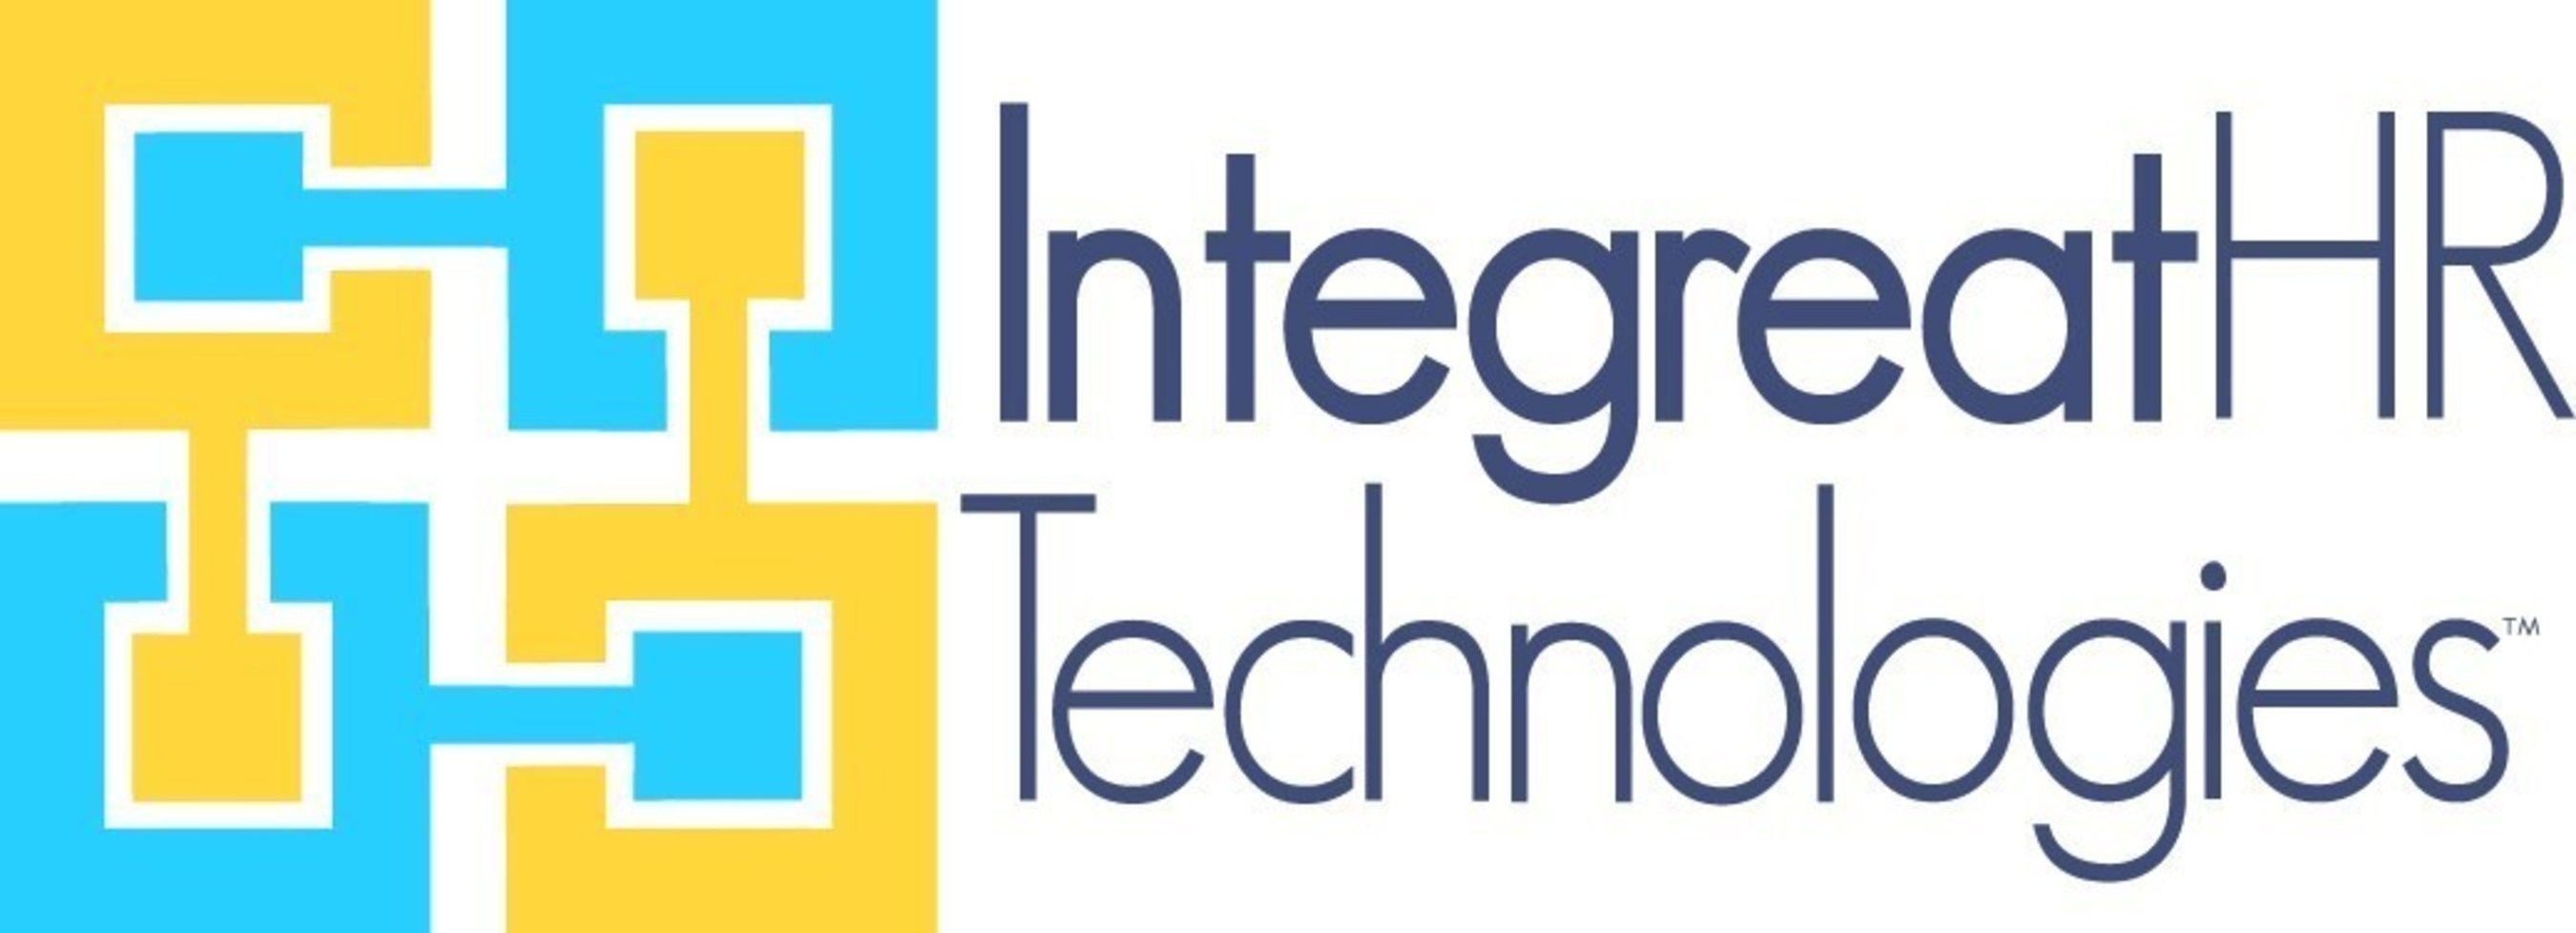 IntegreatHR Technologies Announces New Adobe eSign Services For Customers